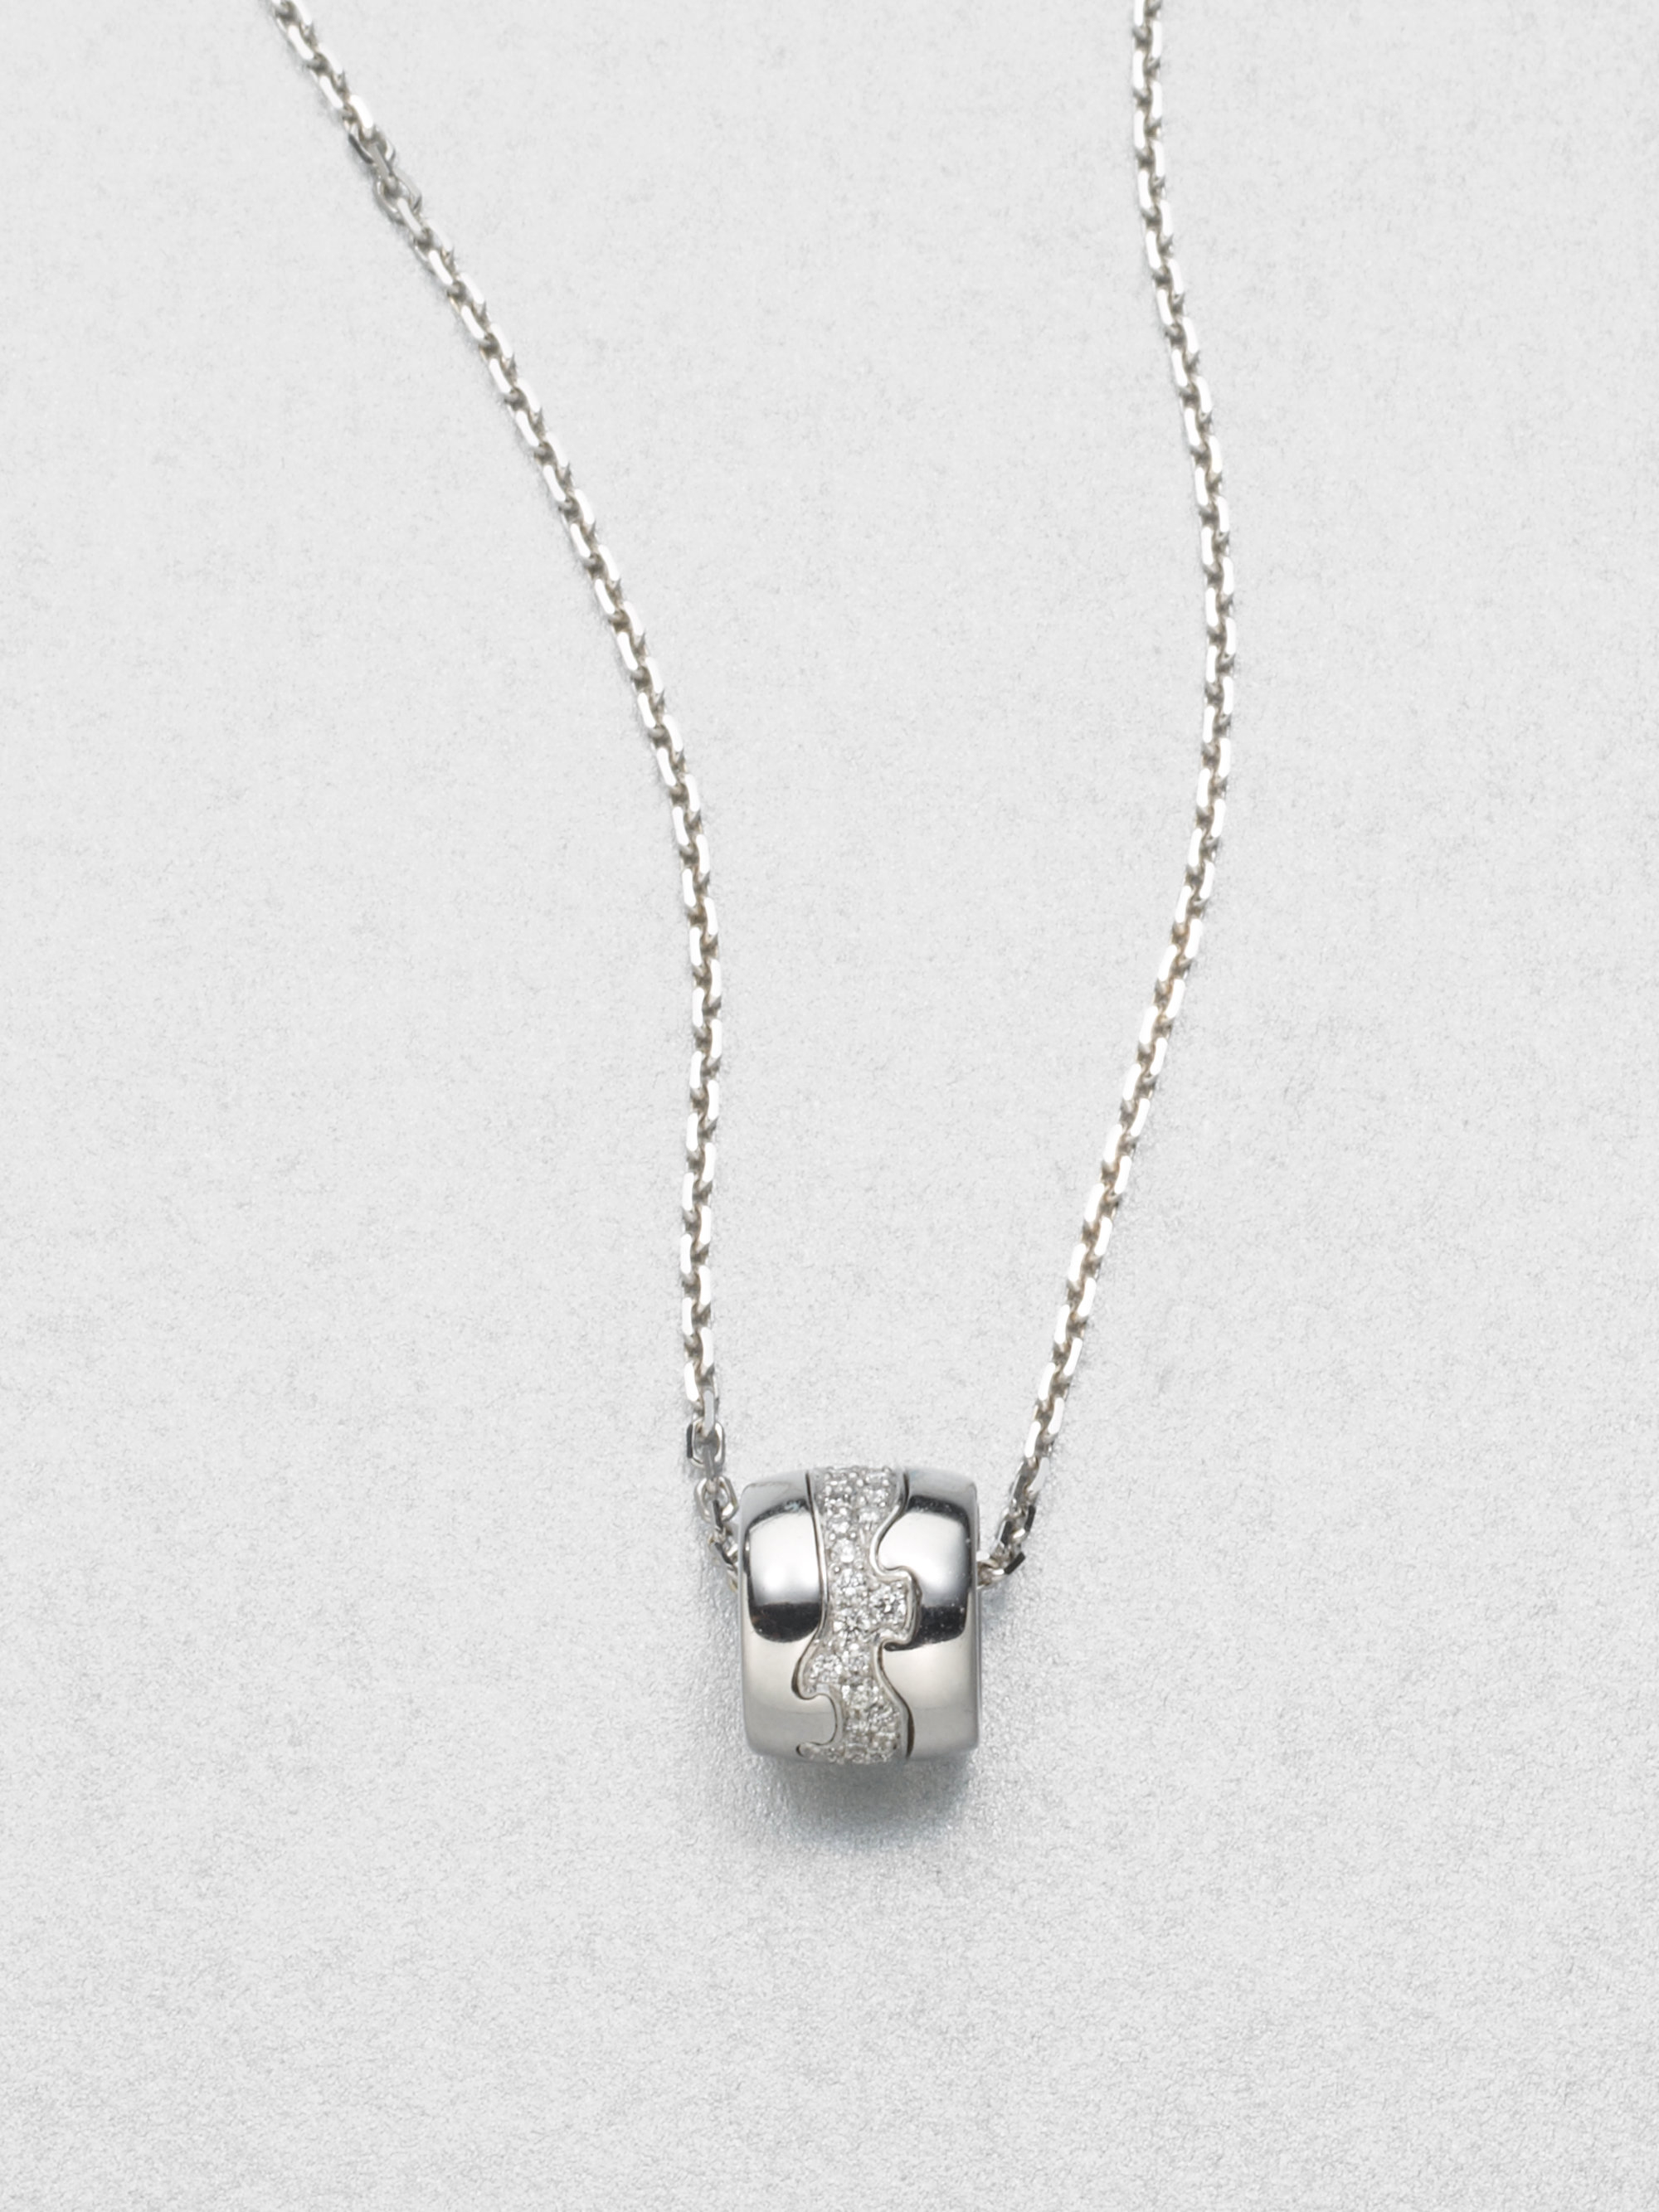 Lyst georg jensen diamond and 18k white gold necklace in metallic gallery aloadofball Images